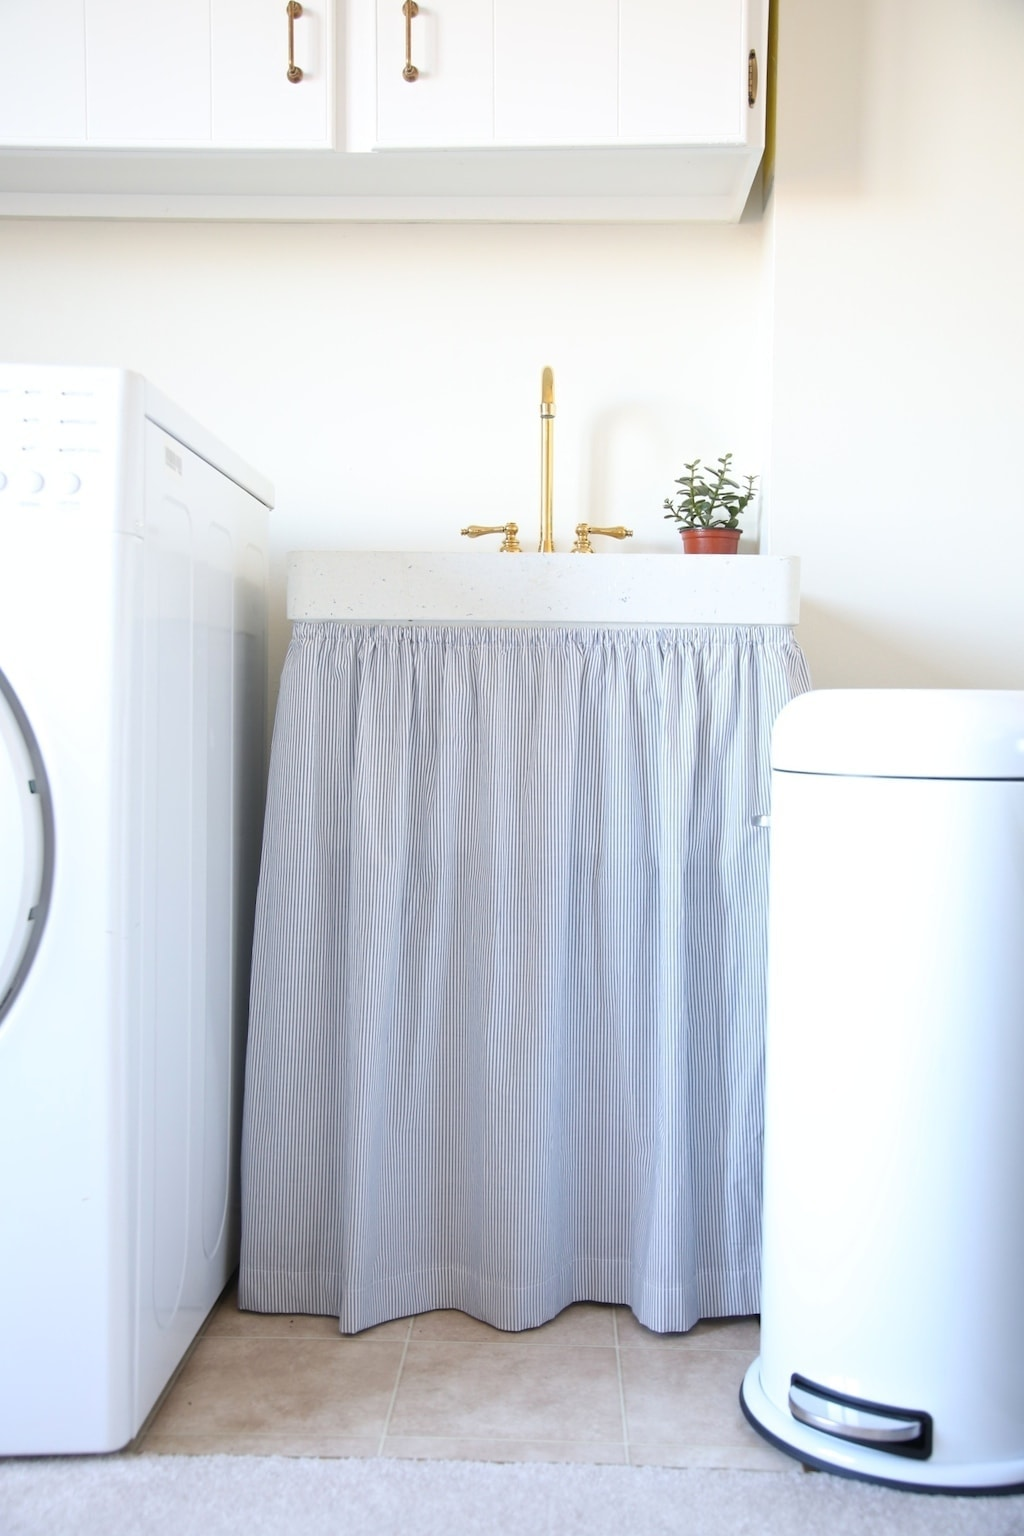 laundry room storage & decor ideas